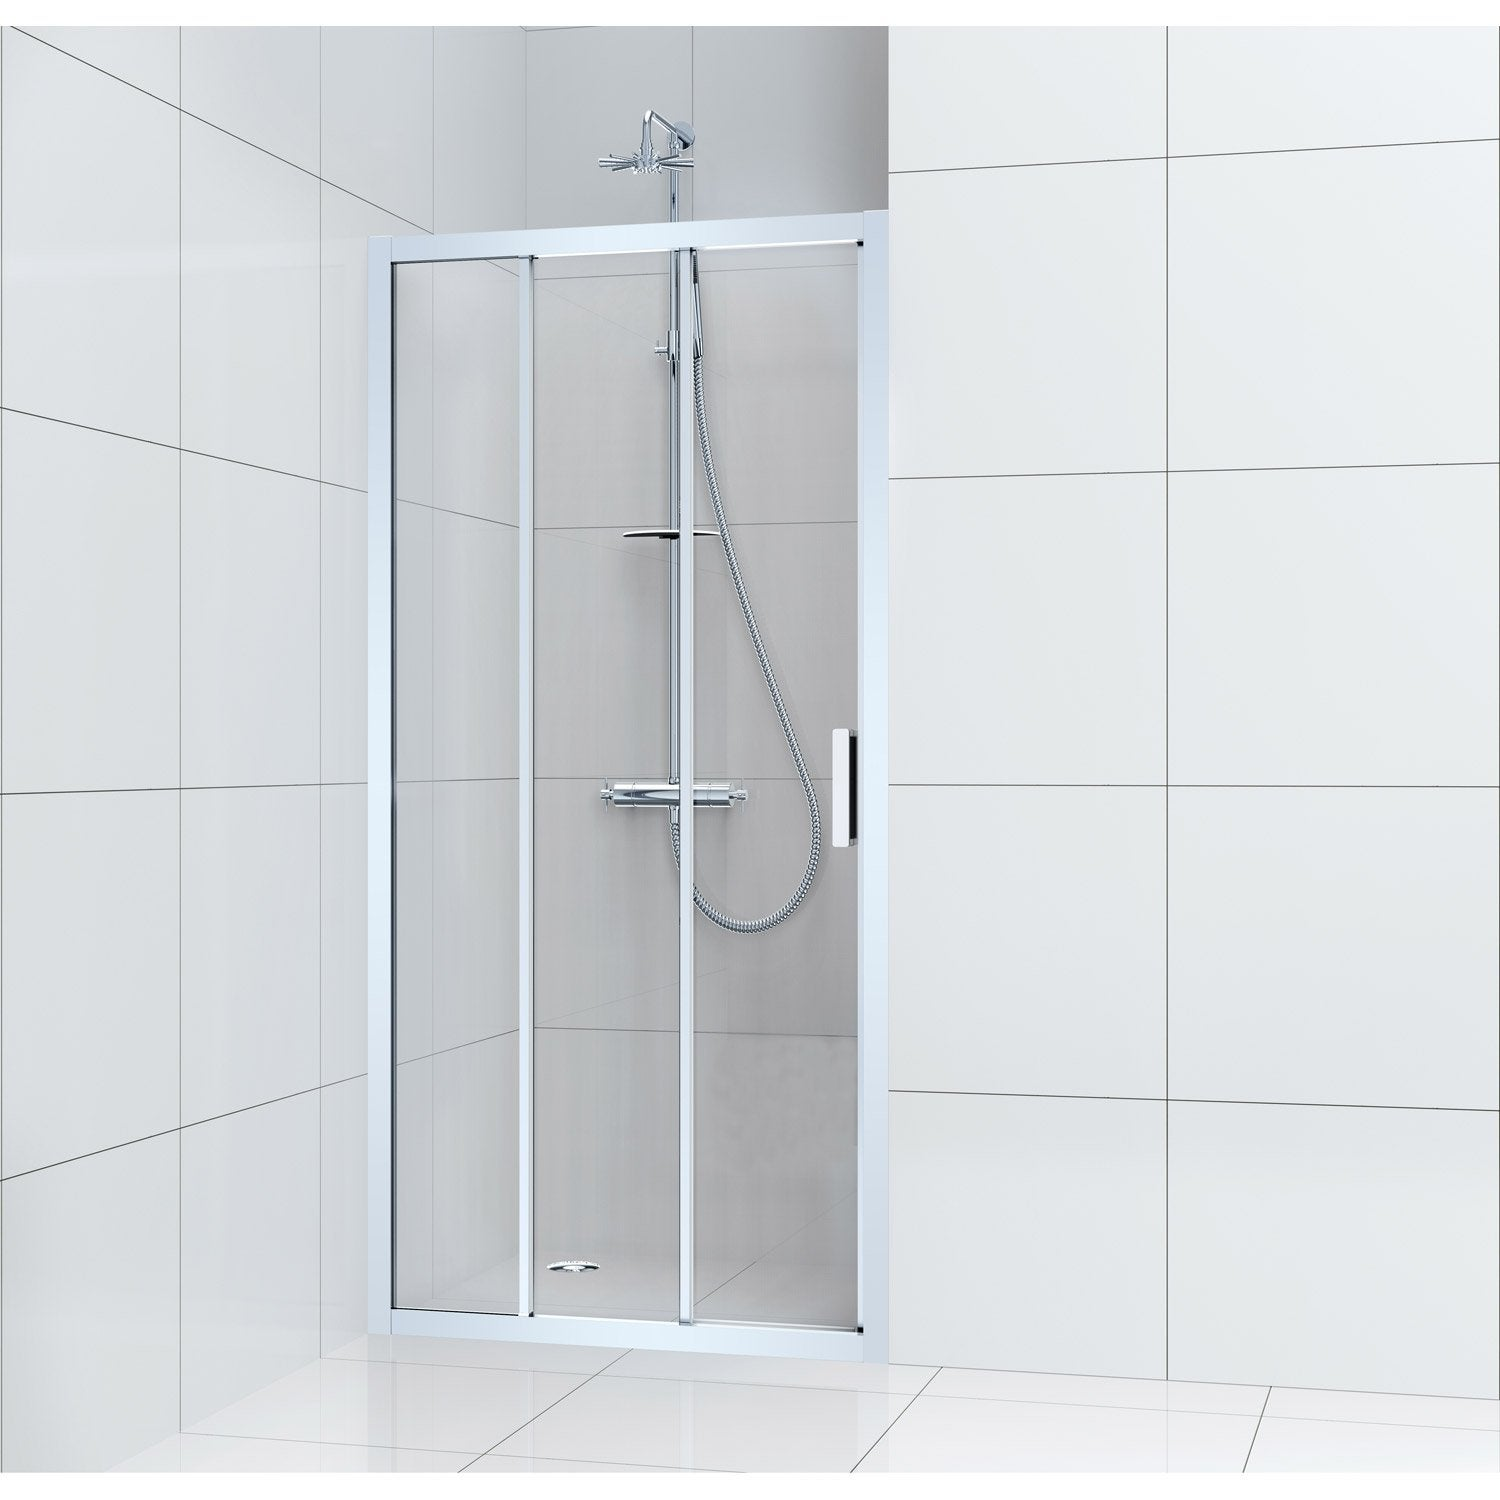 Porte de douche coulissante 100 cm transparent charm for Porte de douche 100